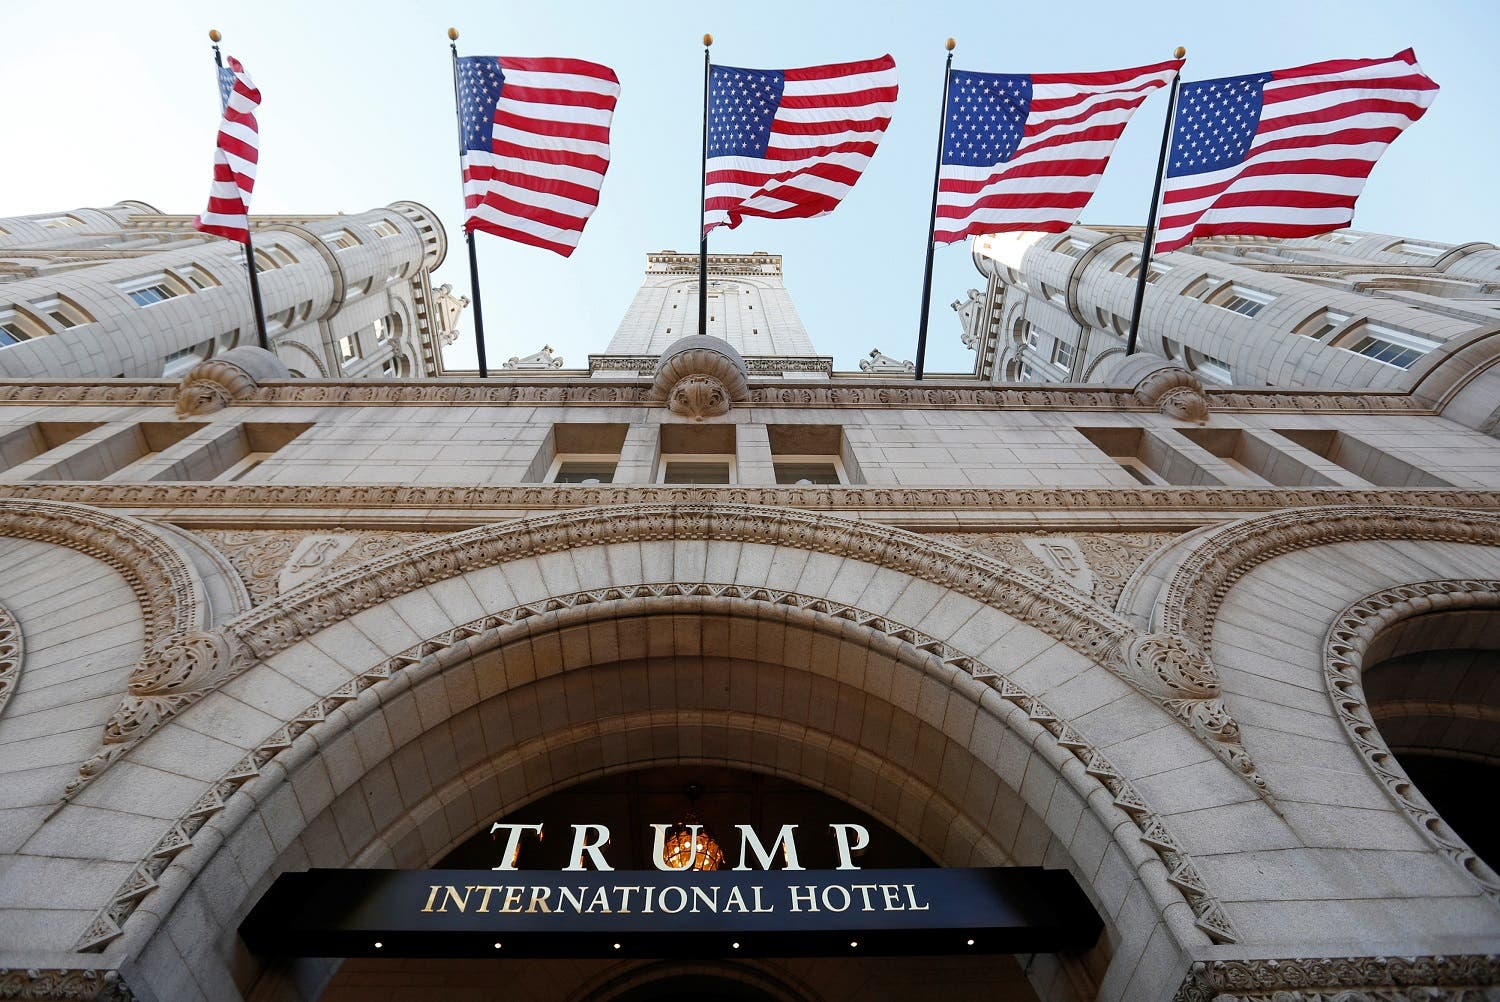 Flags fly above the entrance to Trump International Hotel in Washington, DC. (File photo: Reuters)